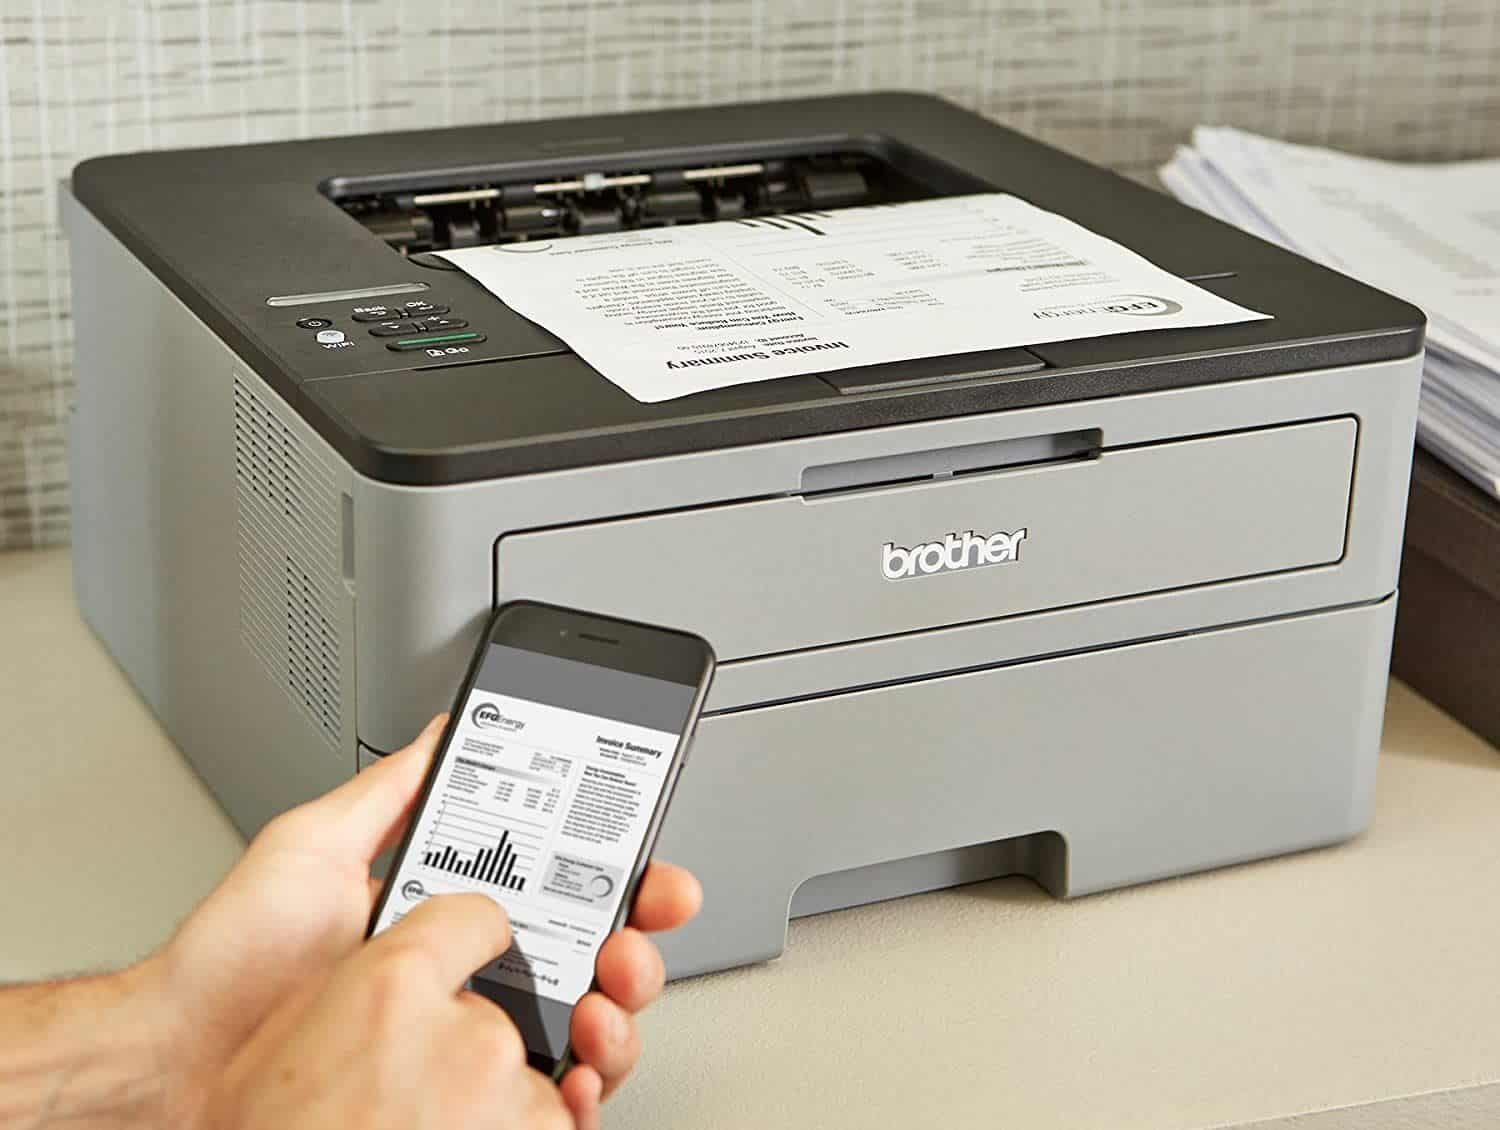 brother hl l2350dw printer